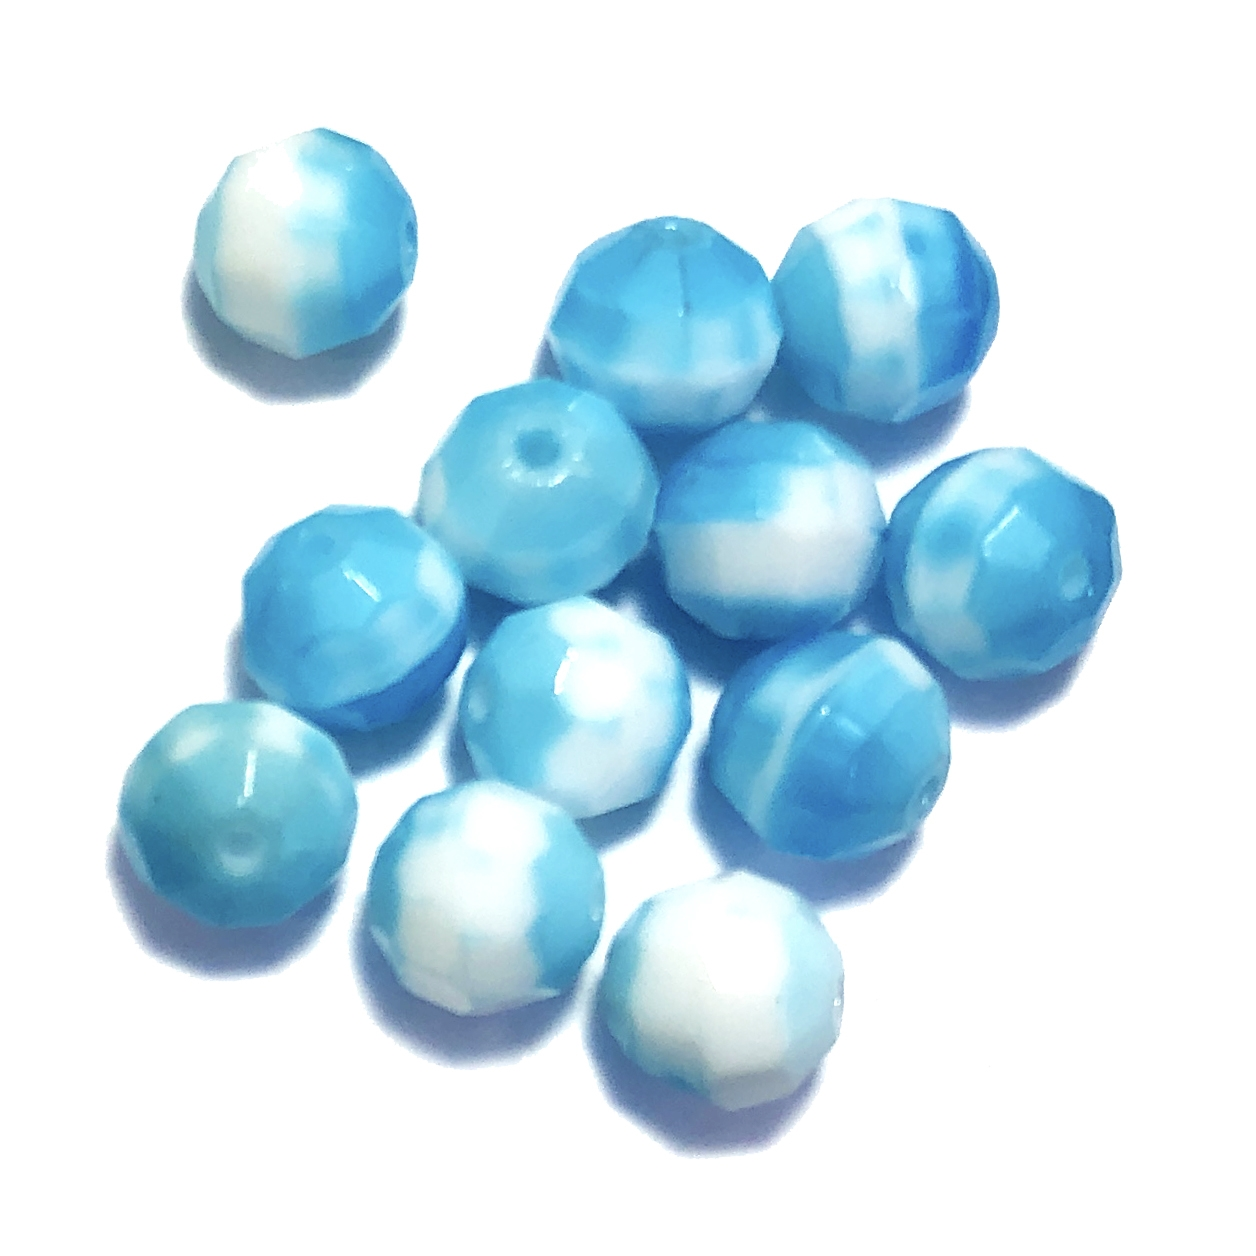 Aqua faceted glass beads, German glass beads, beading supplies, two tone beads, white and aqua jewelry making, jewelry supplies, vintage supplies, B'sue, round beads, 8mm, faceted beads, glass beads, 0218